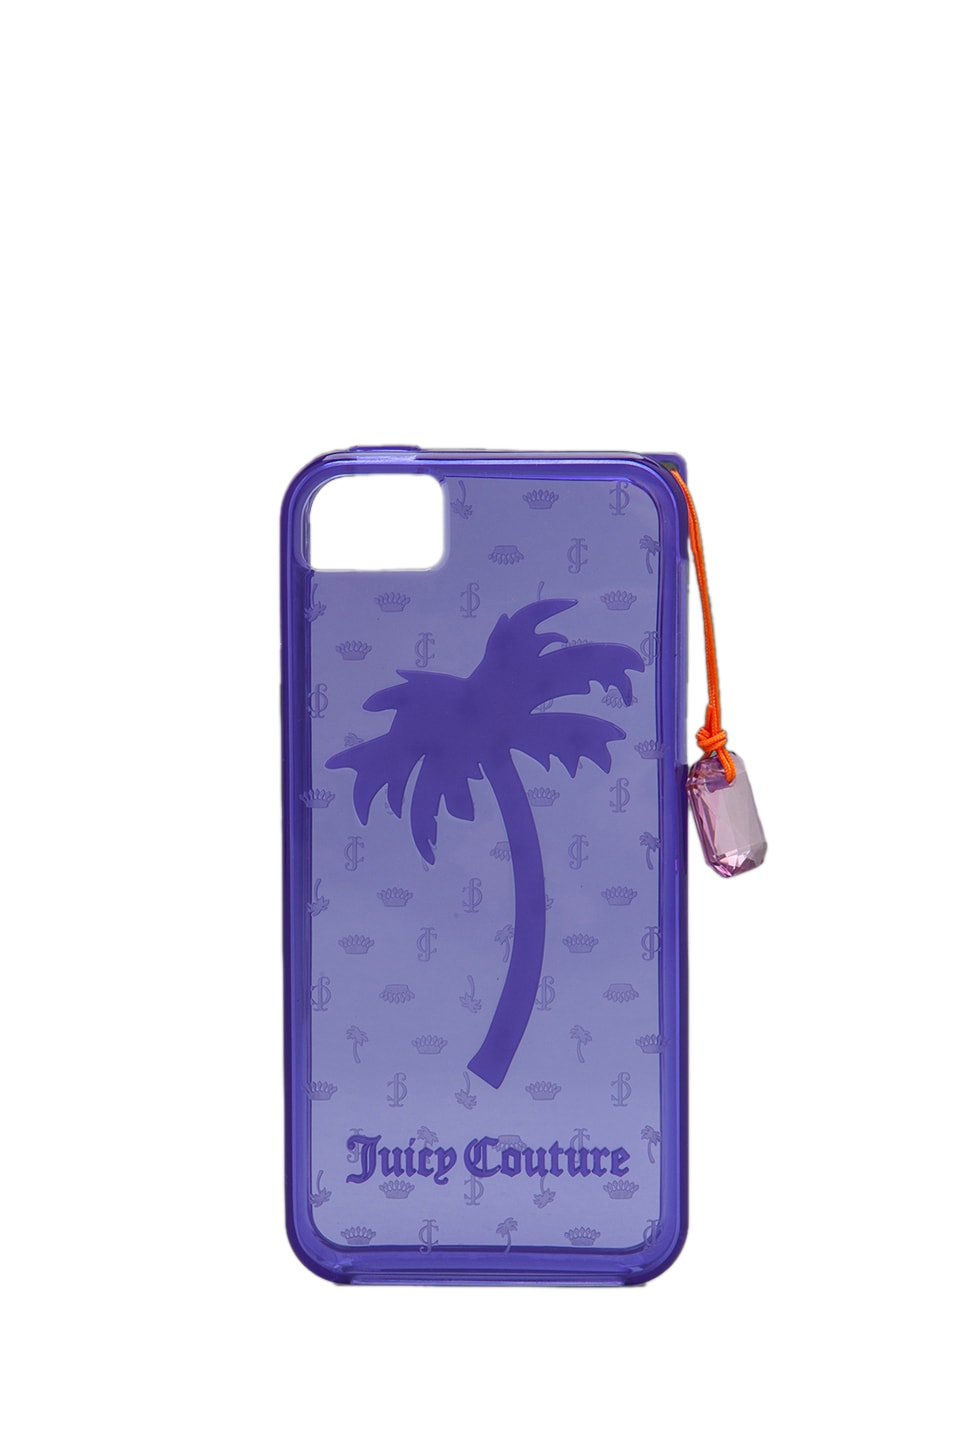 Juicy Couture Gelli iPhone 5 Case in Electric Purple